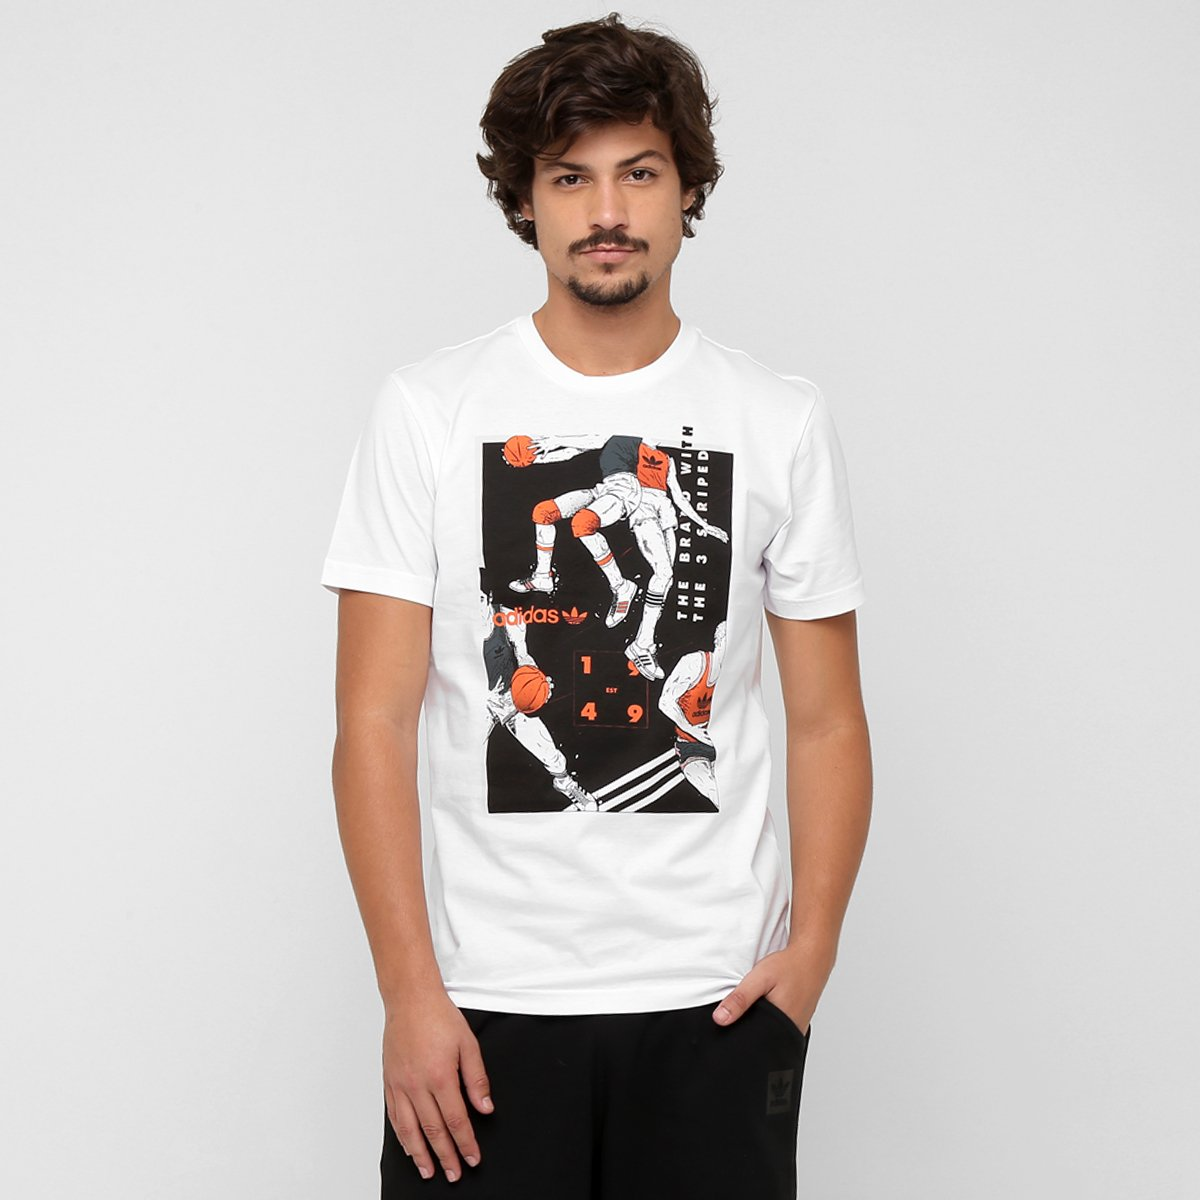 Camiseta Adidas Originals Tongue Basketball - Compre Agora  e9a103b058ceb